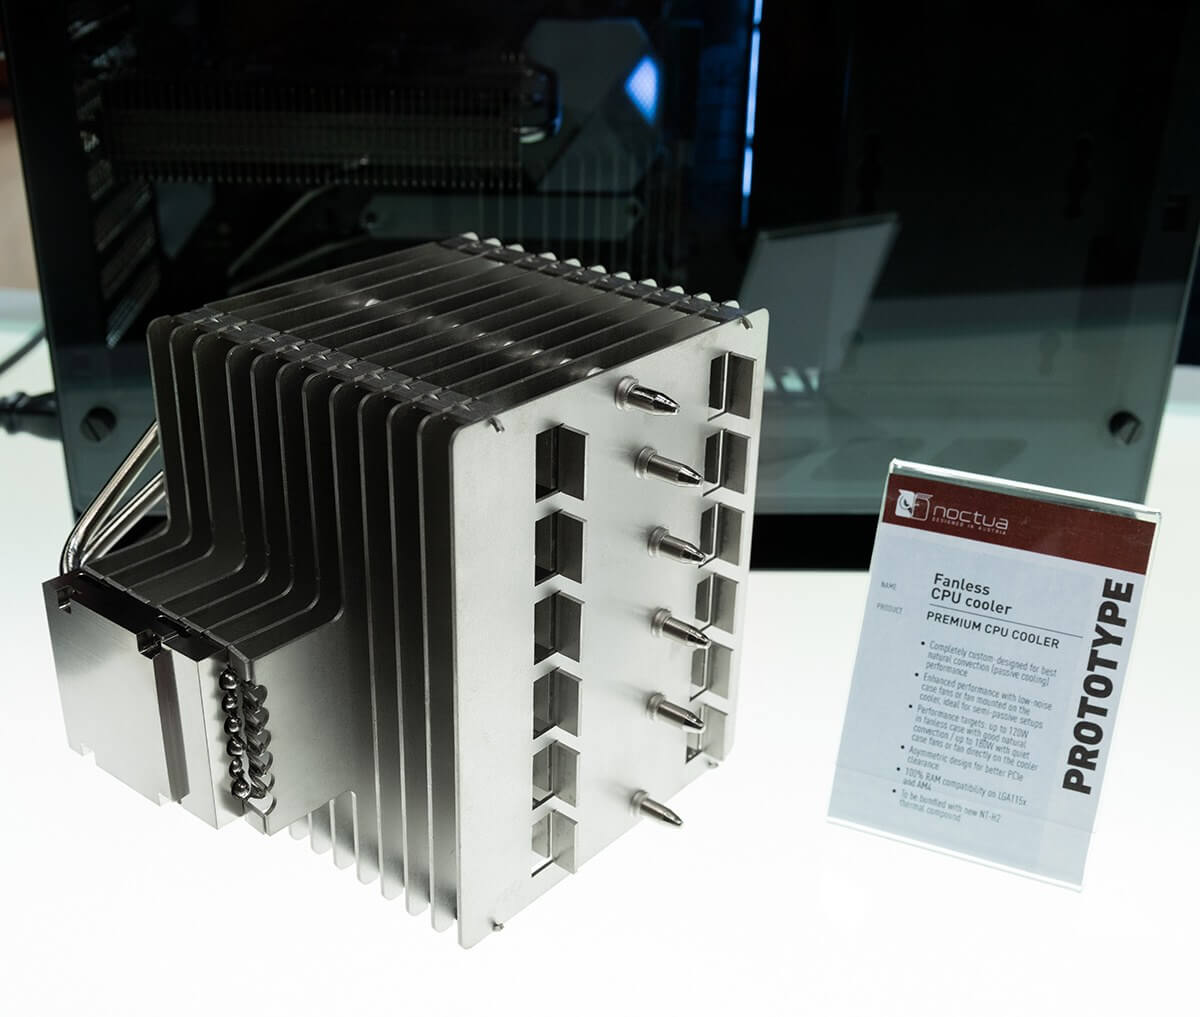 Noctua shows off 1.5kg fanless cooler that can handle high-end processors